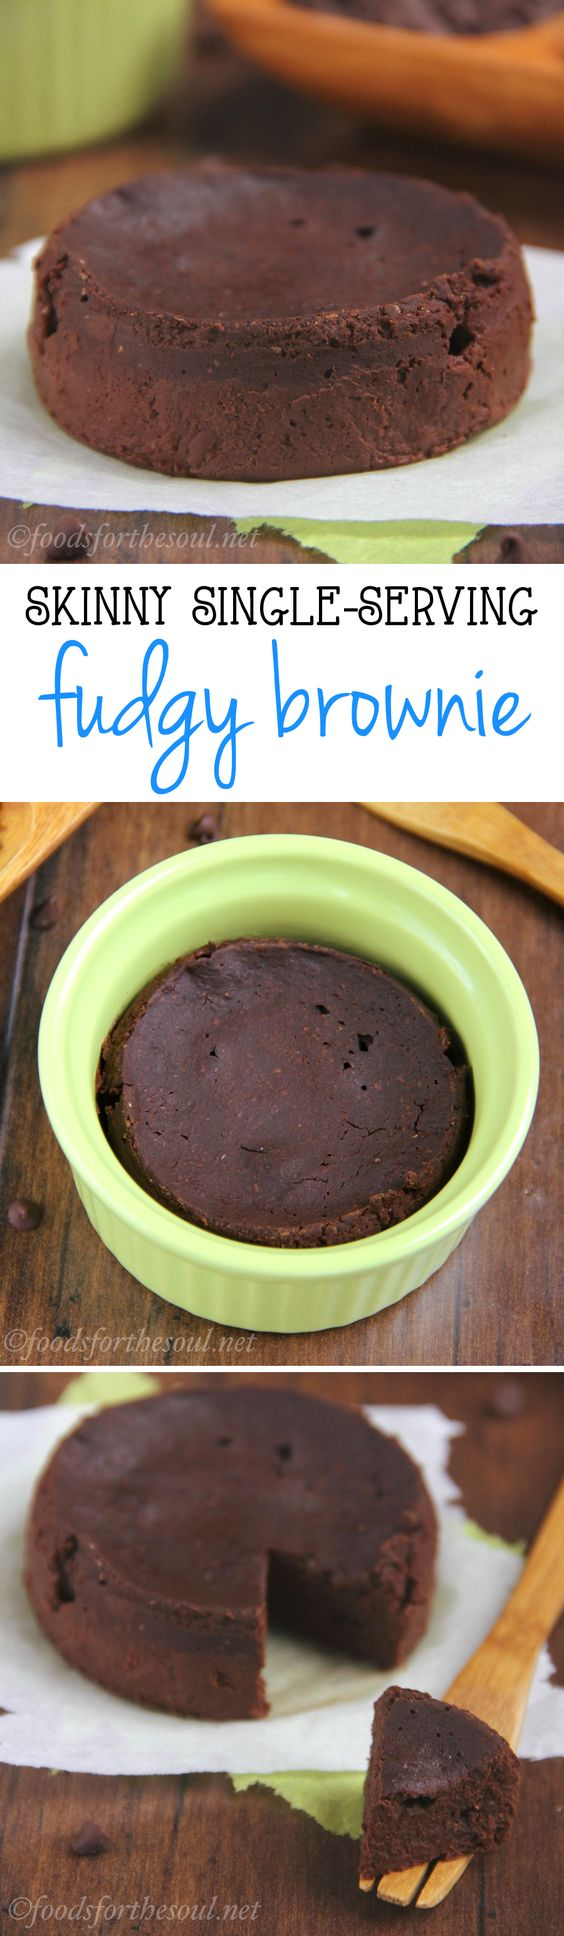 A rich, fudgy brownie you can make with just 6 ingredients in under 10 minutes! It's the perfect skinny & clean-eating treat!